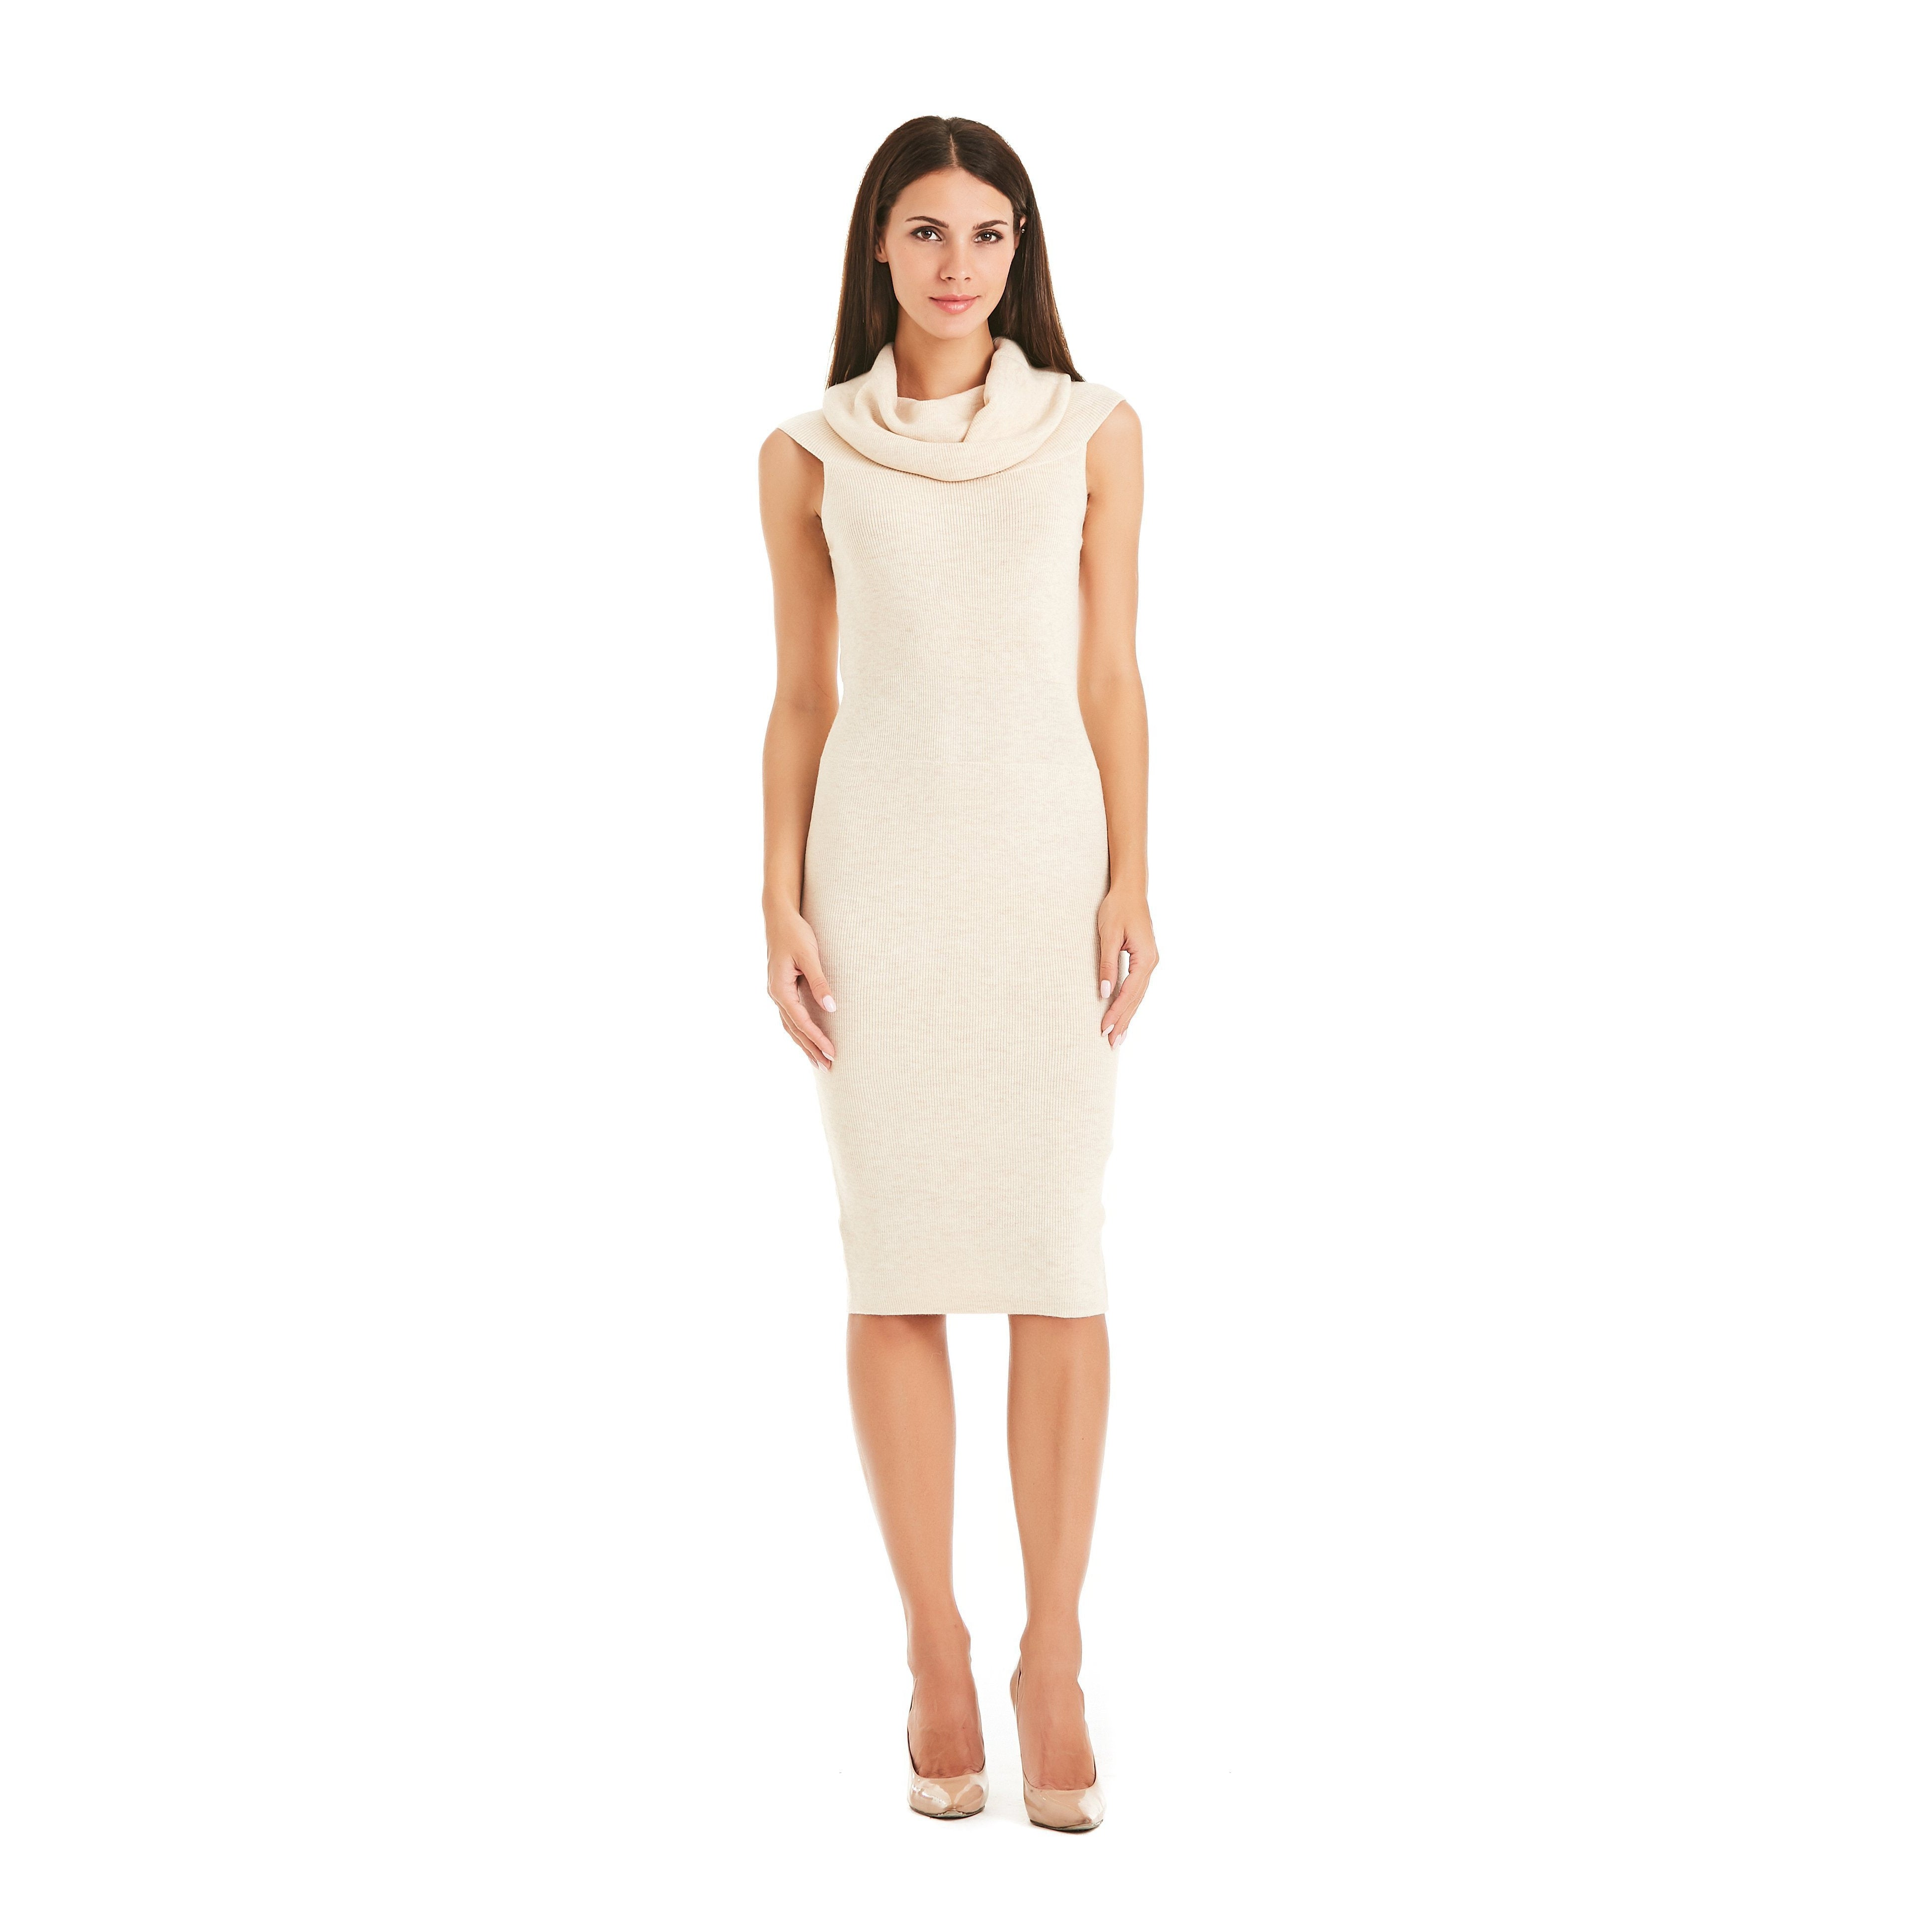 Beige Frill Dress With Bardot Neckline-INA VOKICH-HOUSE of BOTTA